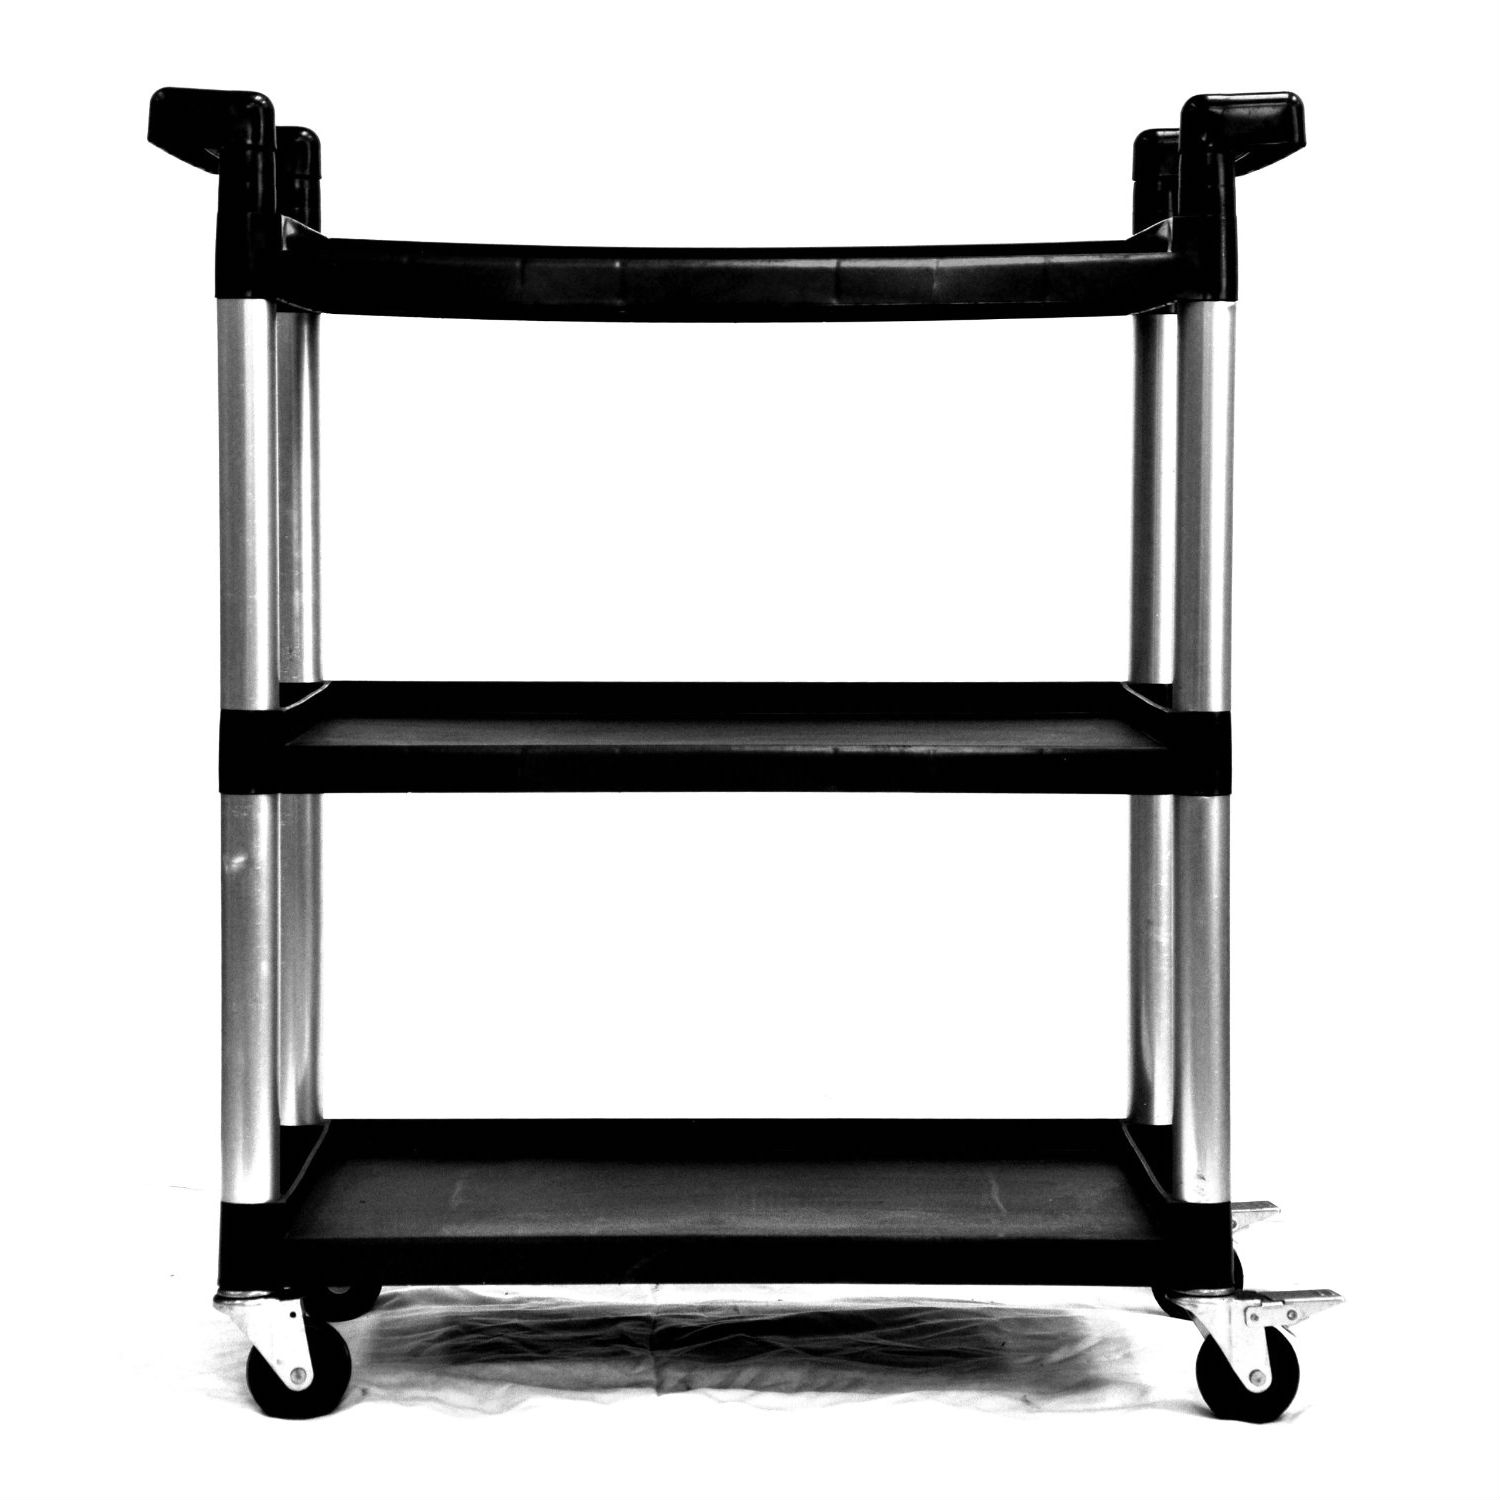 3tier printer stand utility cart with locking casters - Printer Cart